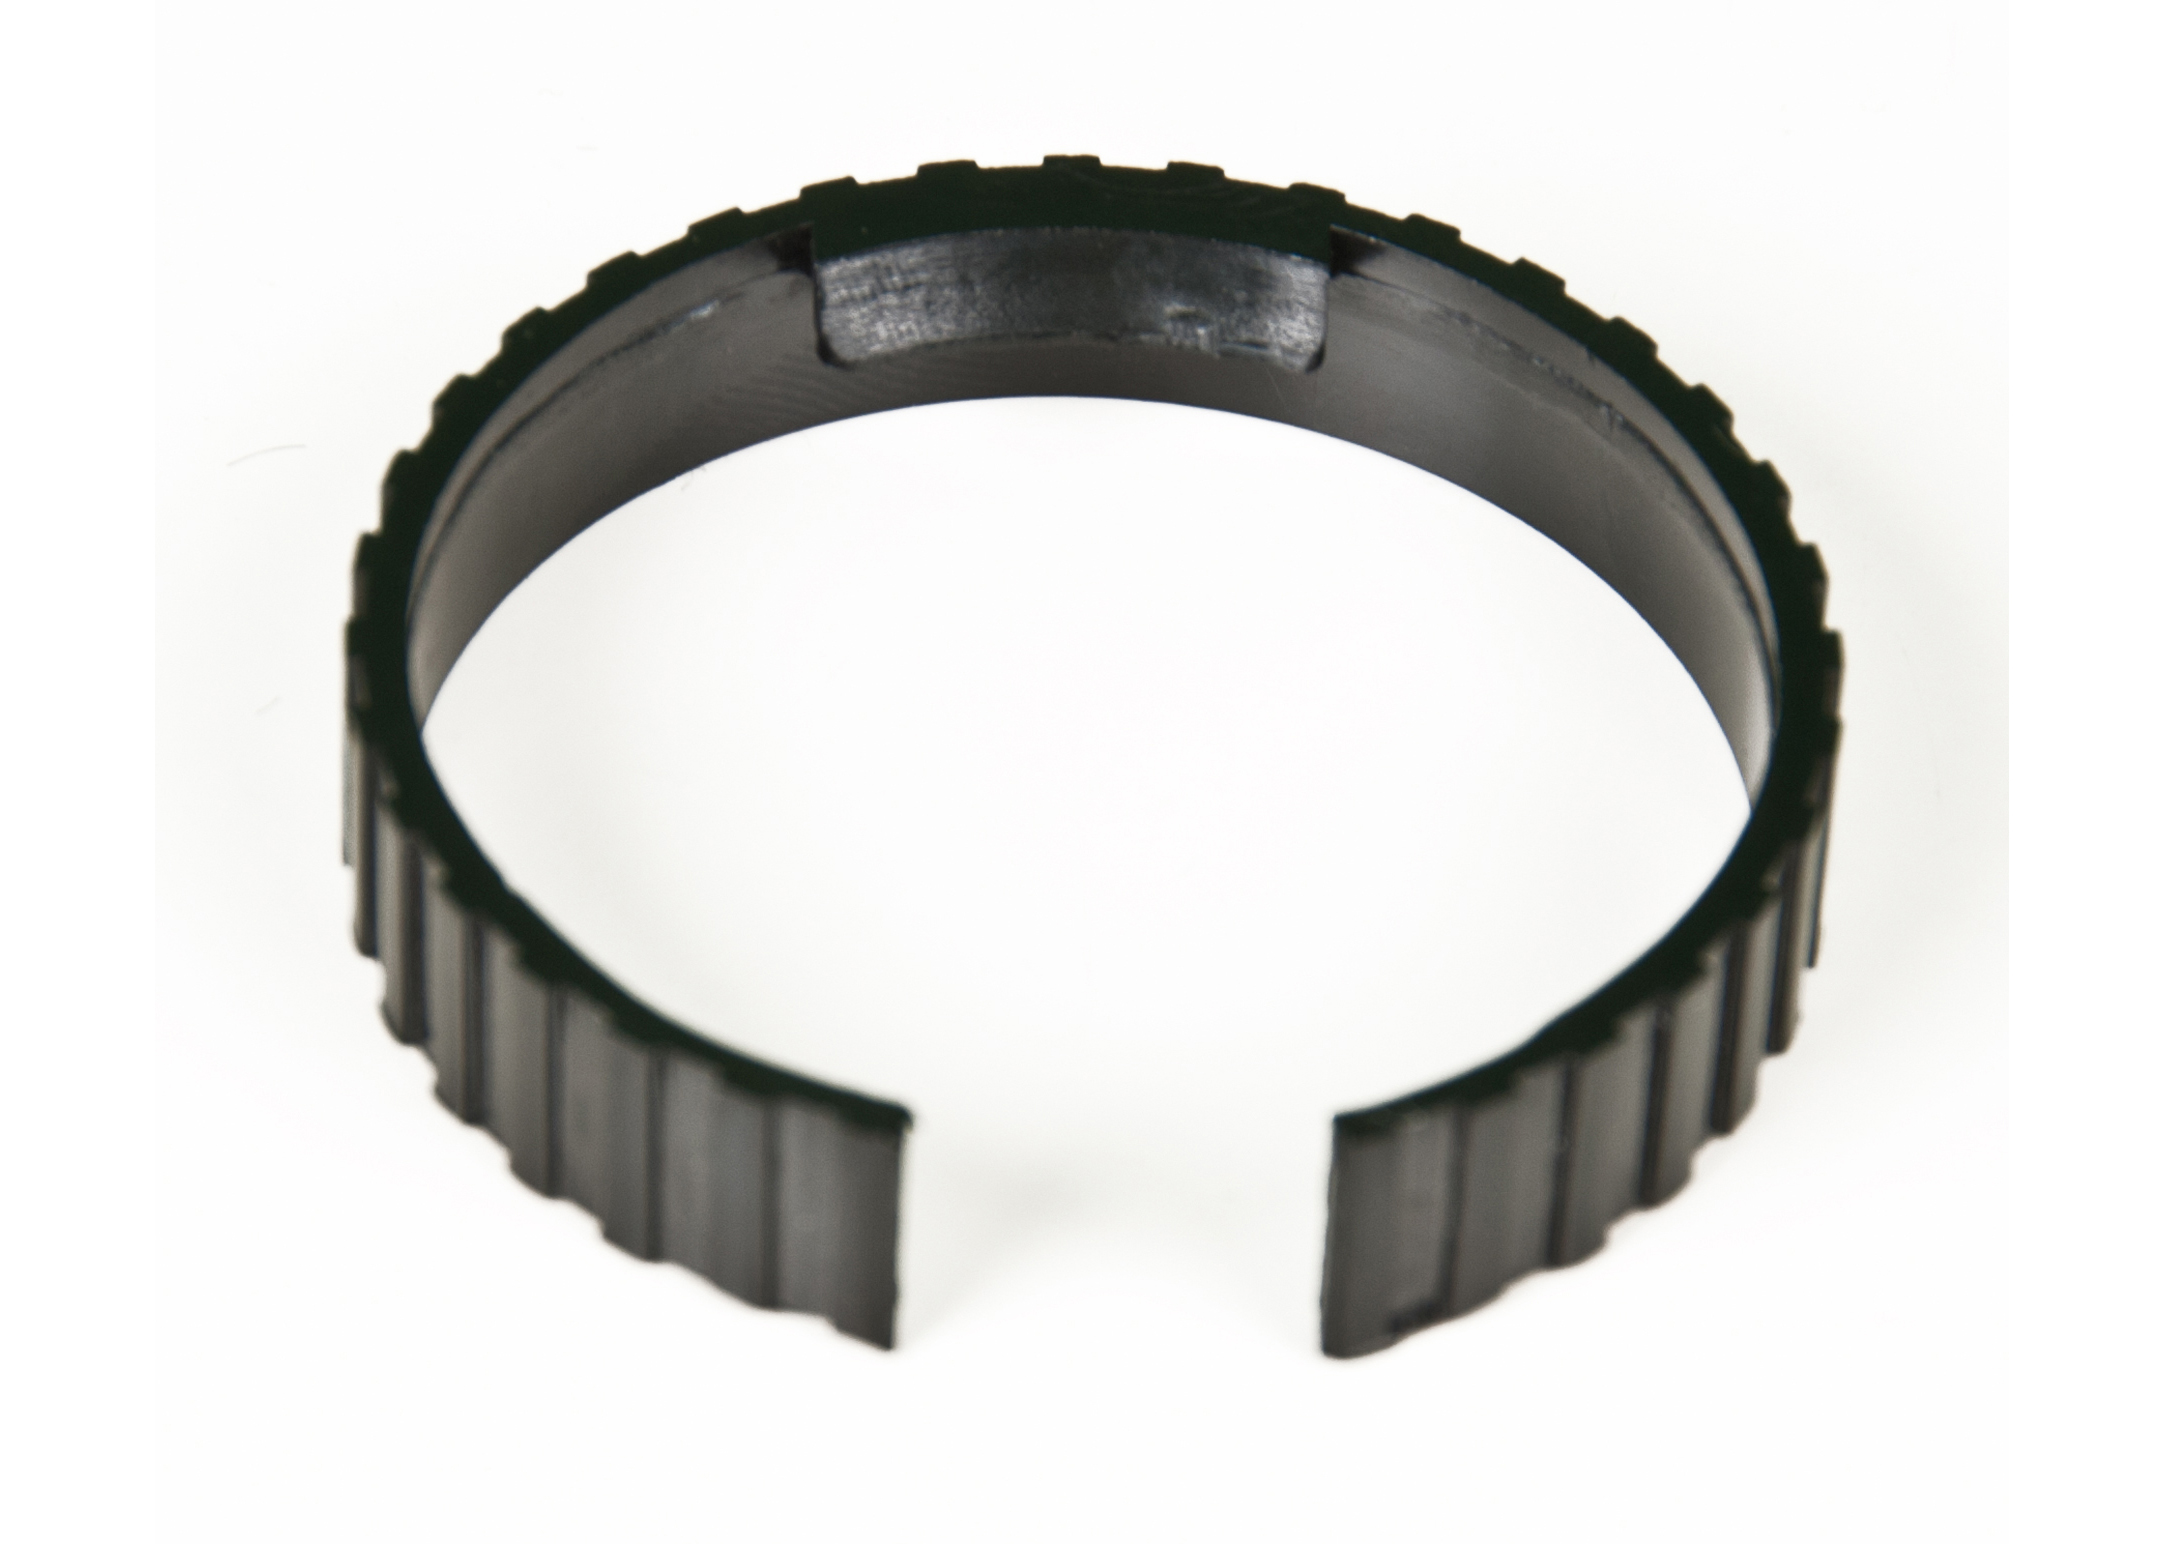 Groom-X Retaining Ring voor Power Dryer and Compact